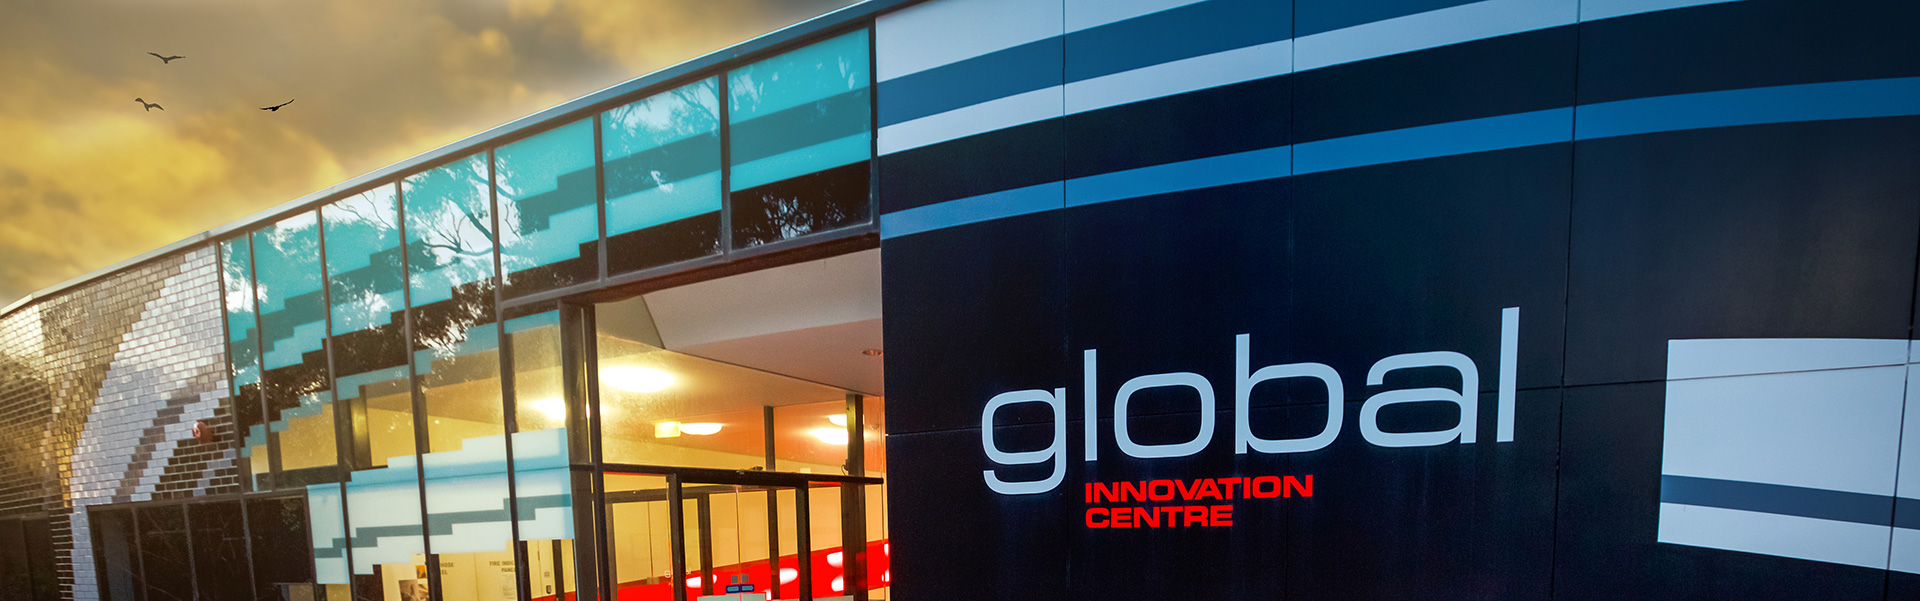 Global Innovation Centre